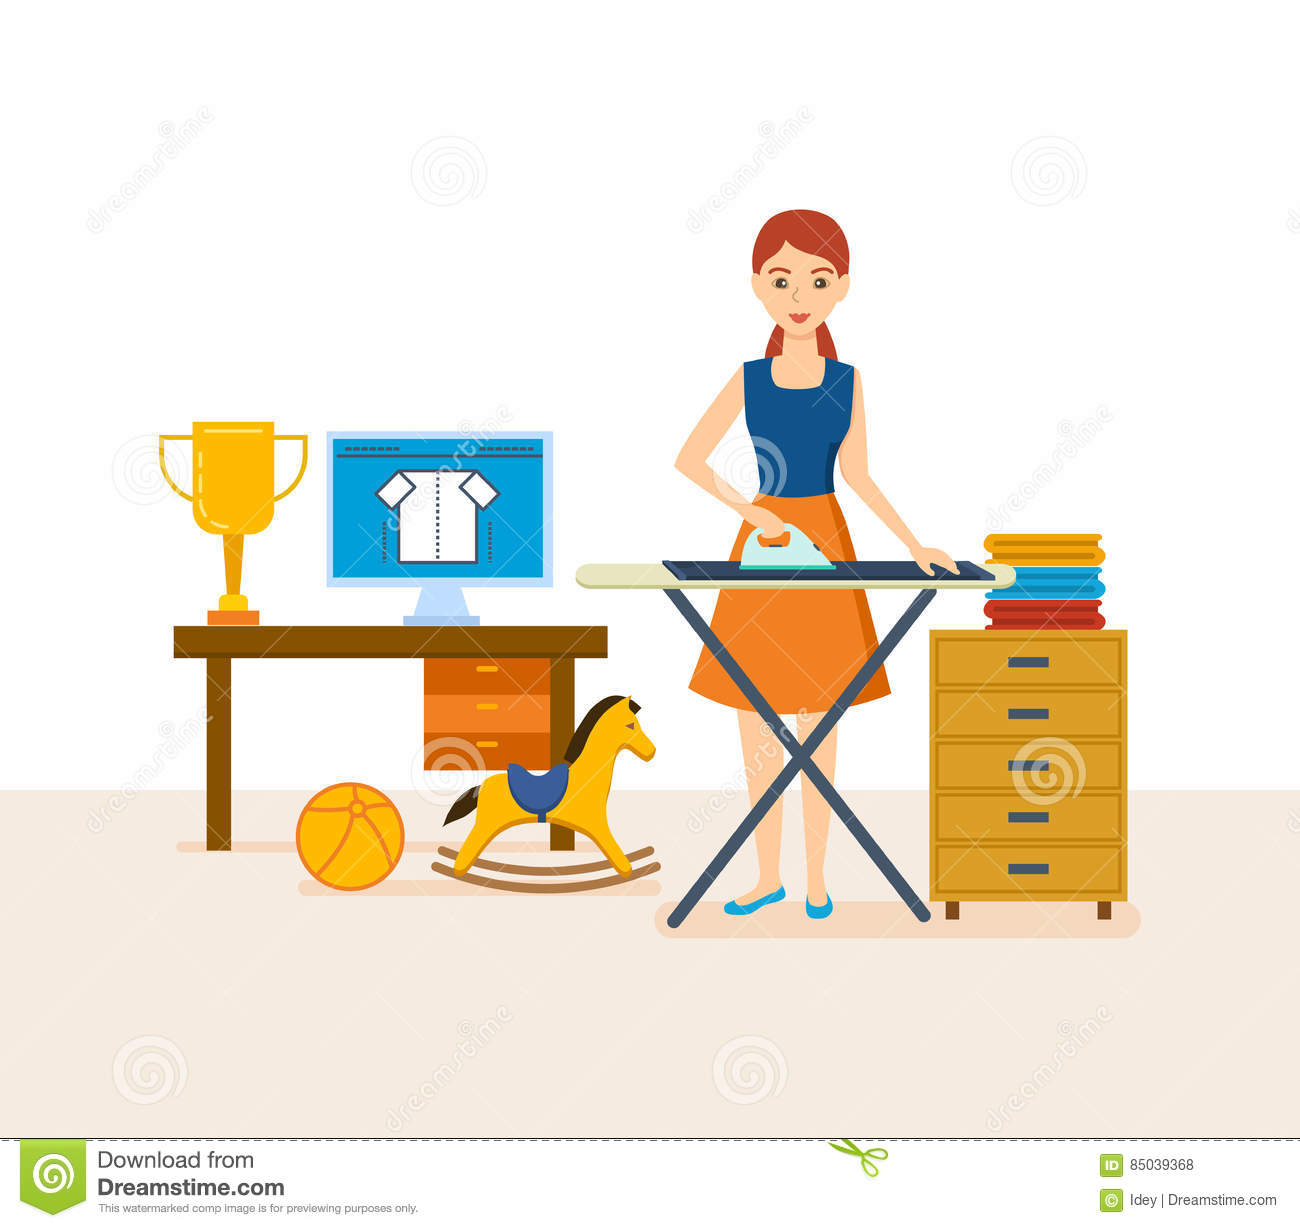 young housewife engaged in household chores cleaned strokes things